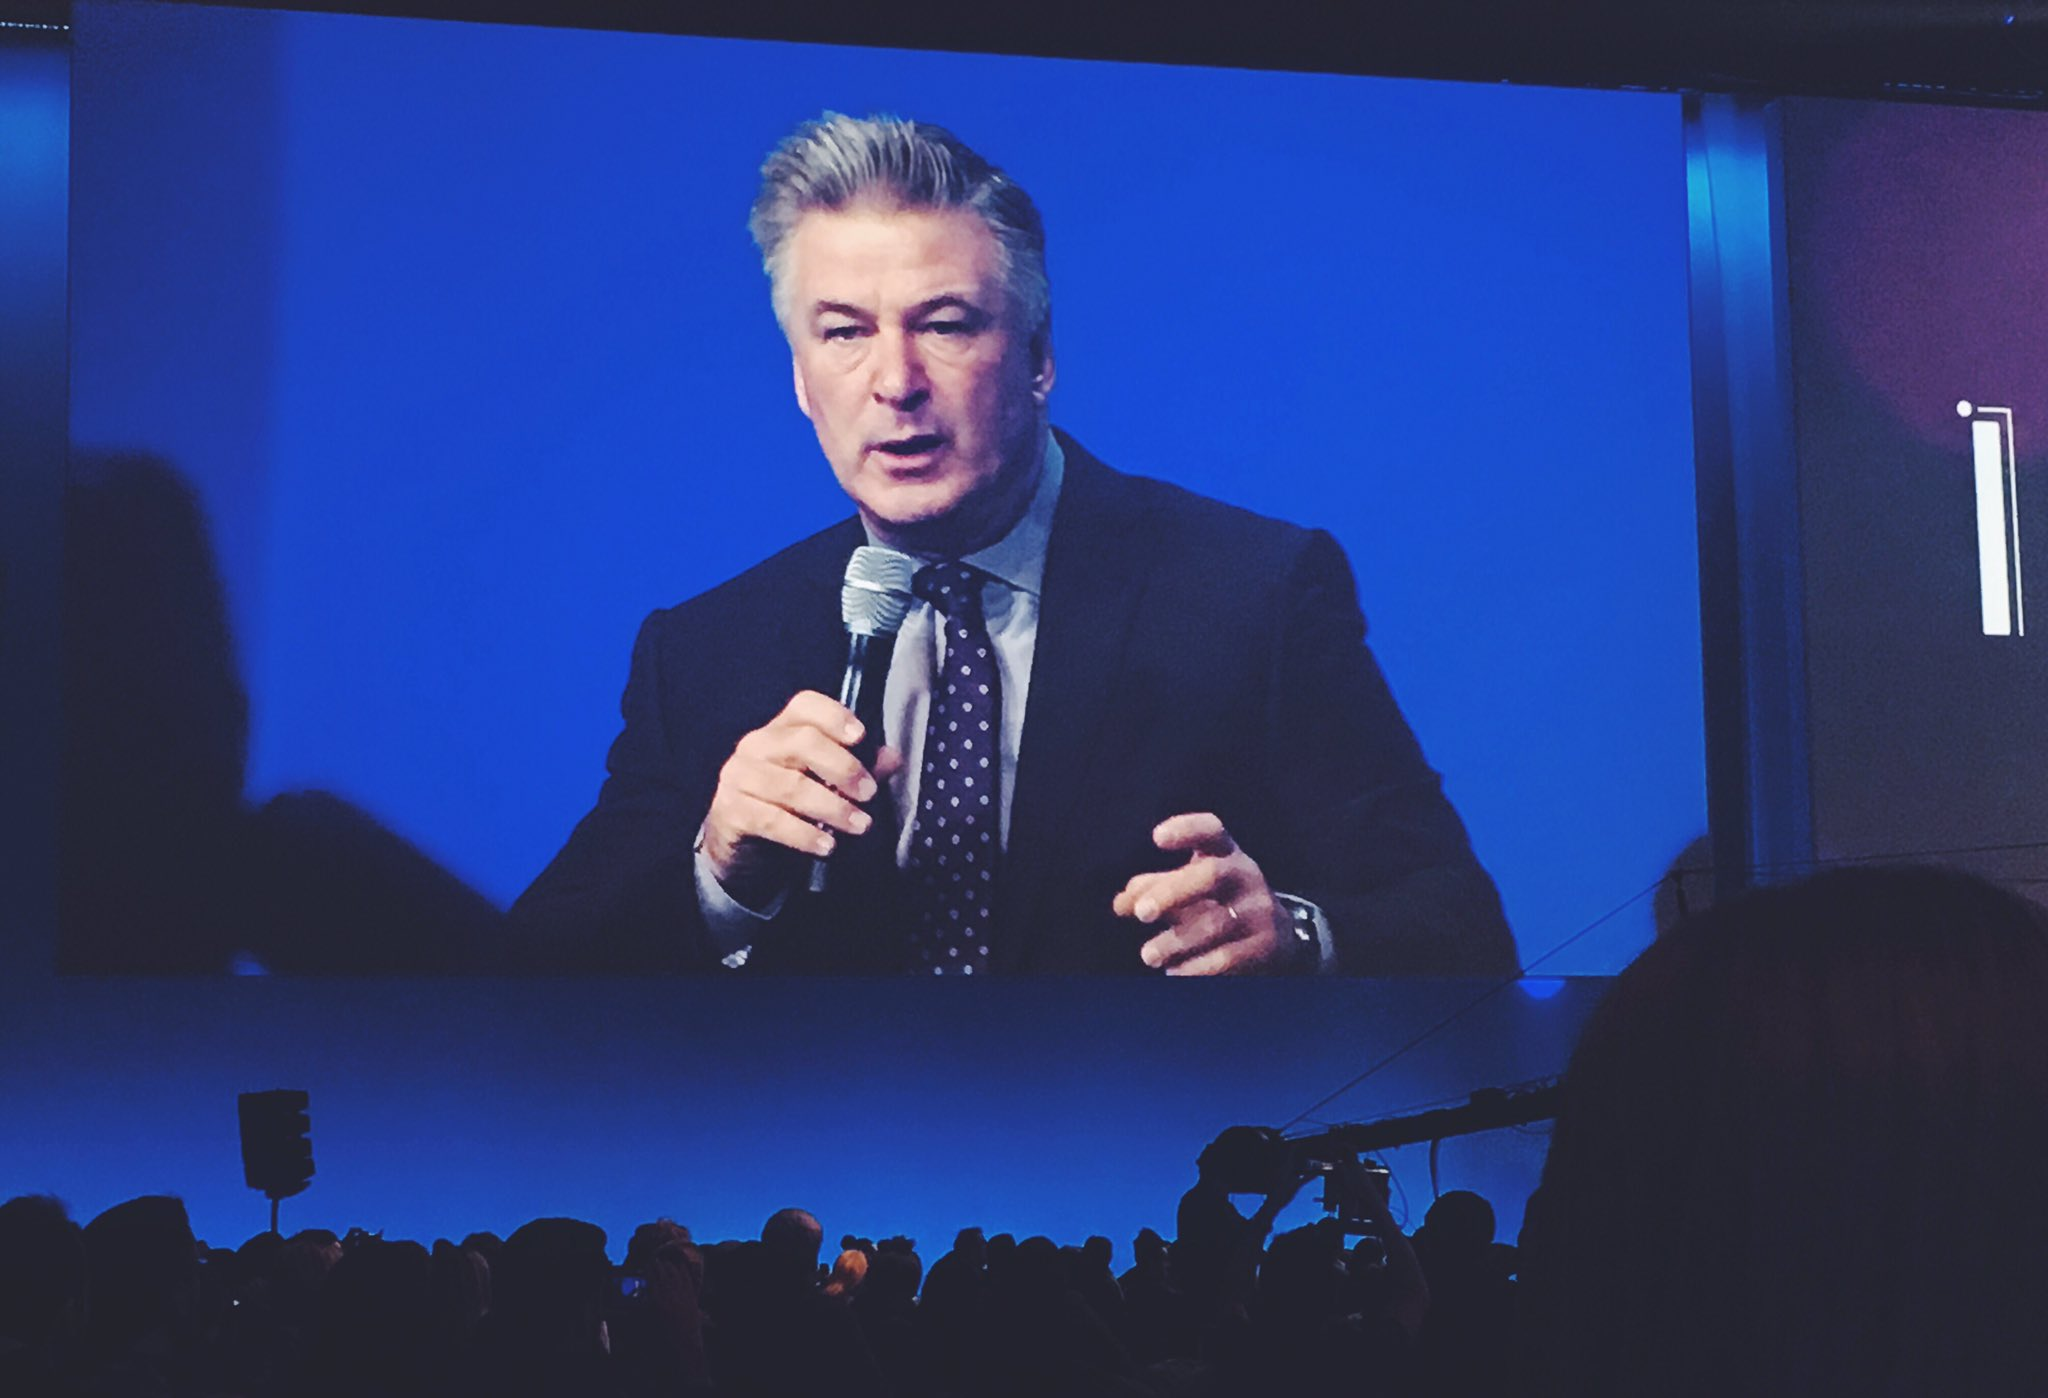 """Inspiration, information, destiny; those are all things we need to unearth in ourselves and each other."" - @AlecBaldwin #INBOUND16 https://t.co/i8GMo8NV99"